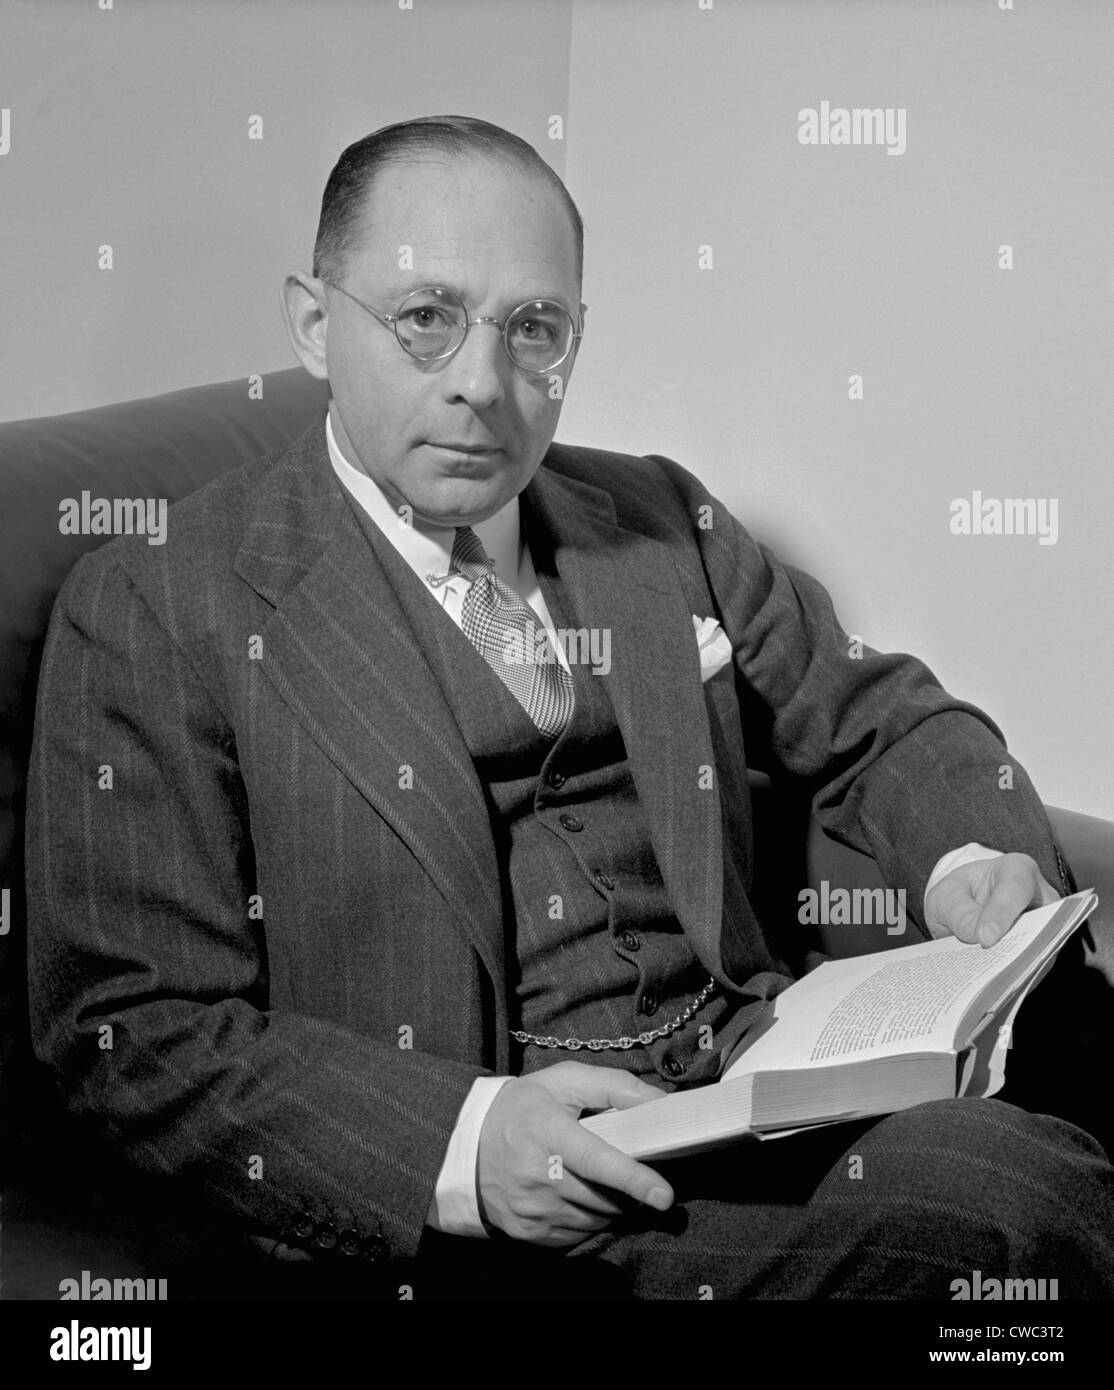 Sidney Weinberg 1891-1969 CEO of Goldman Sachs investment bank during the Great Depression and World War II. Unlike - Stock Image